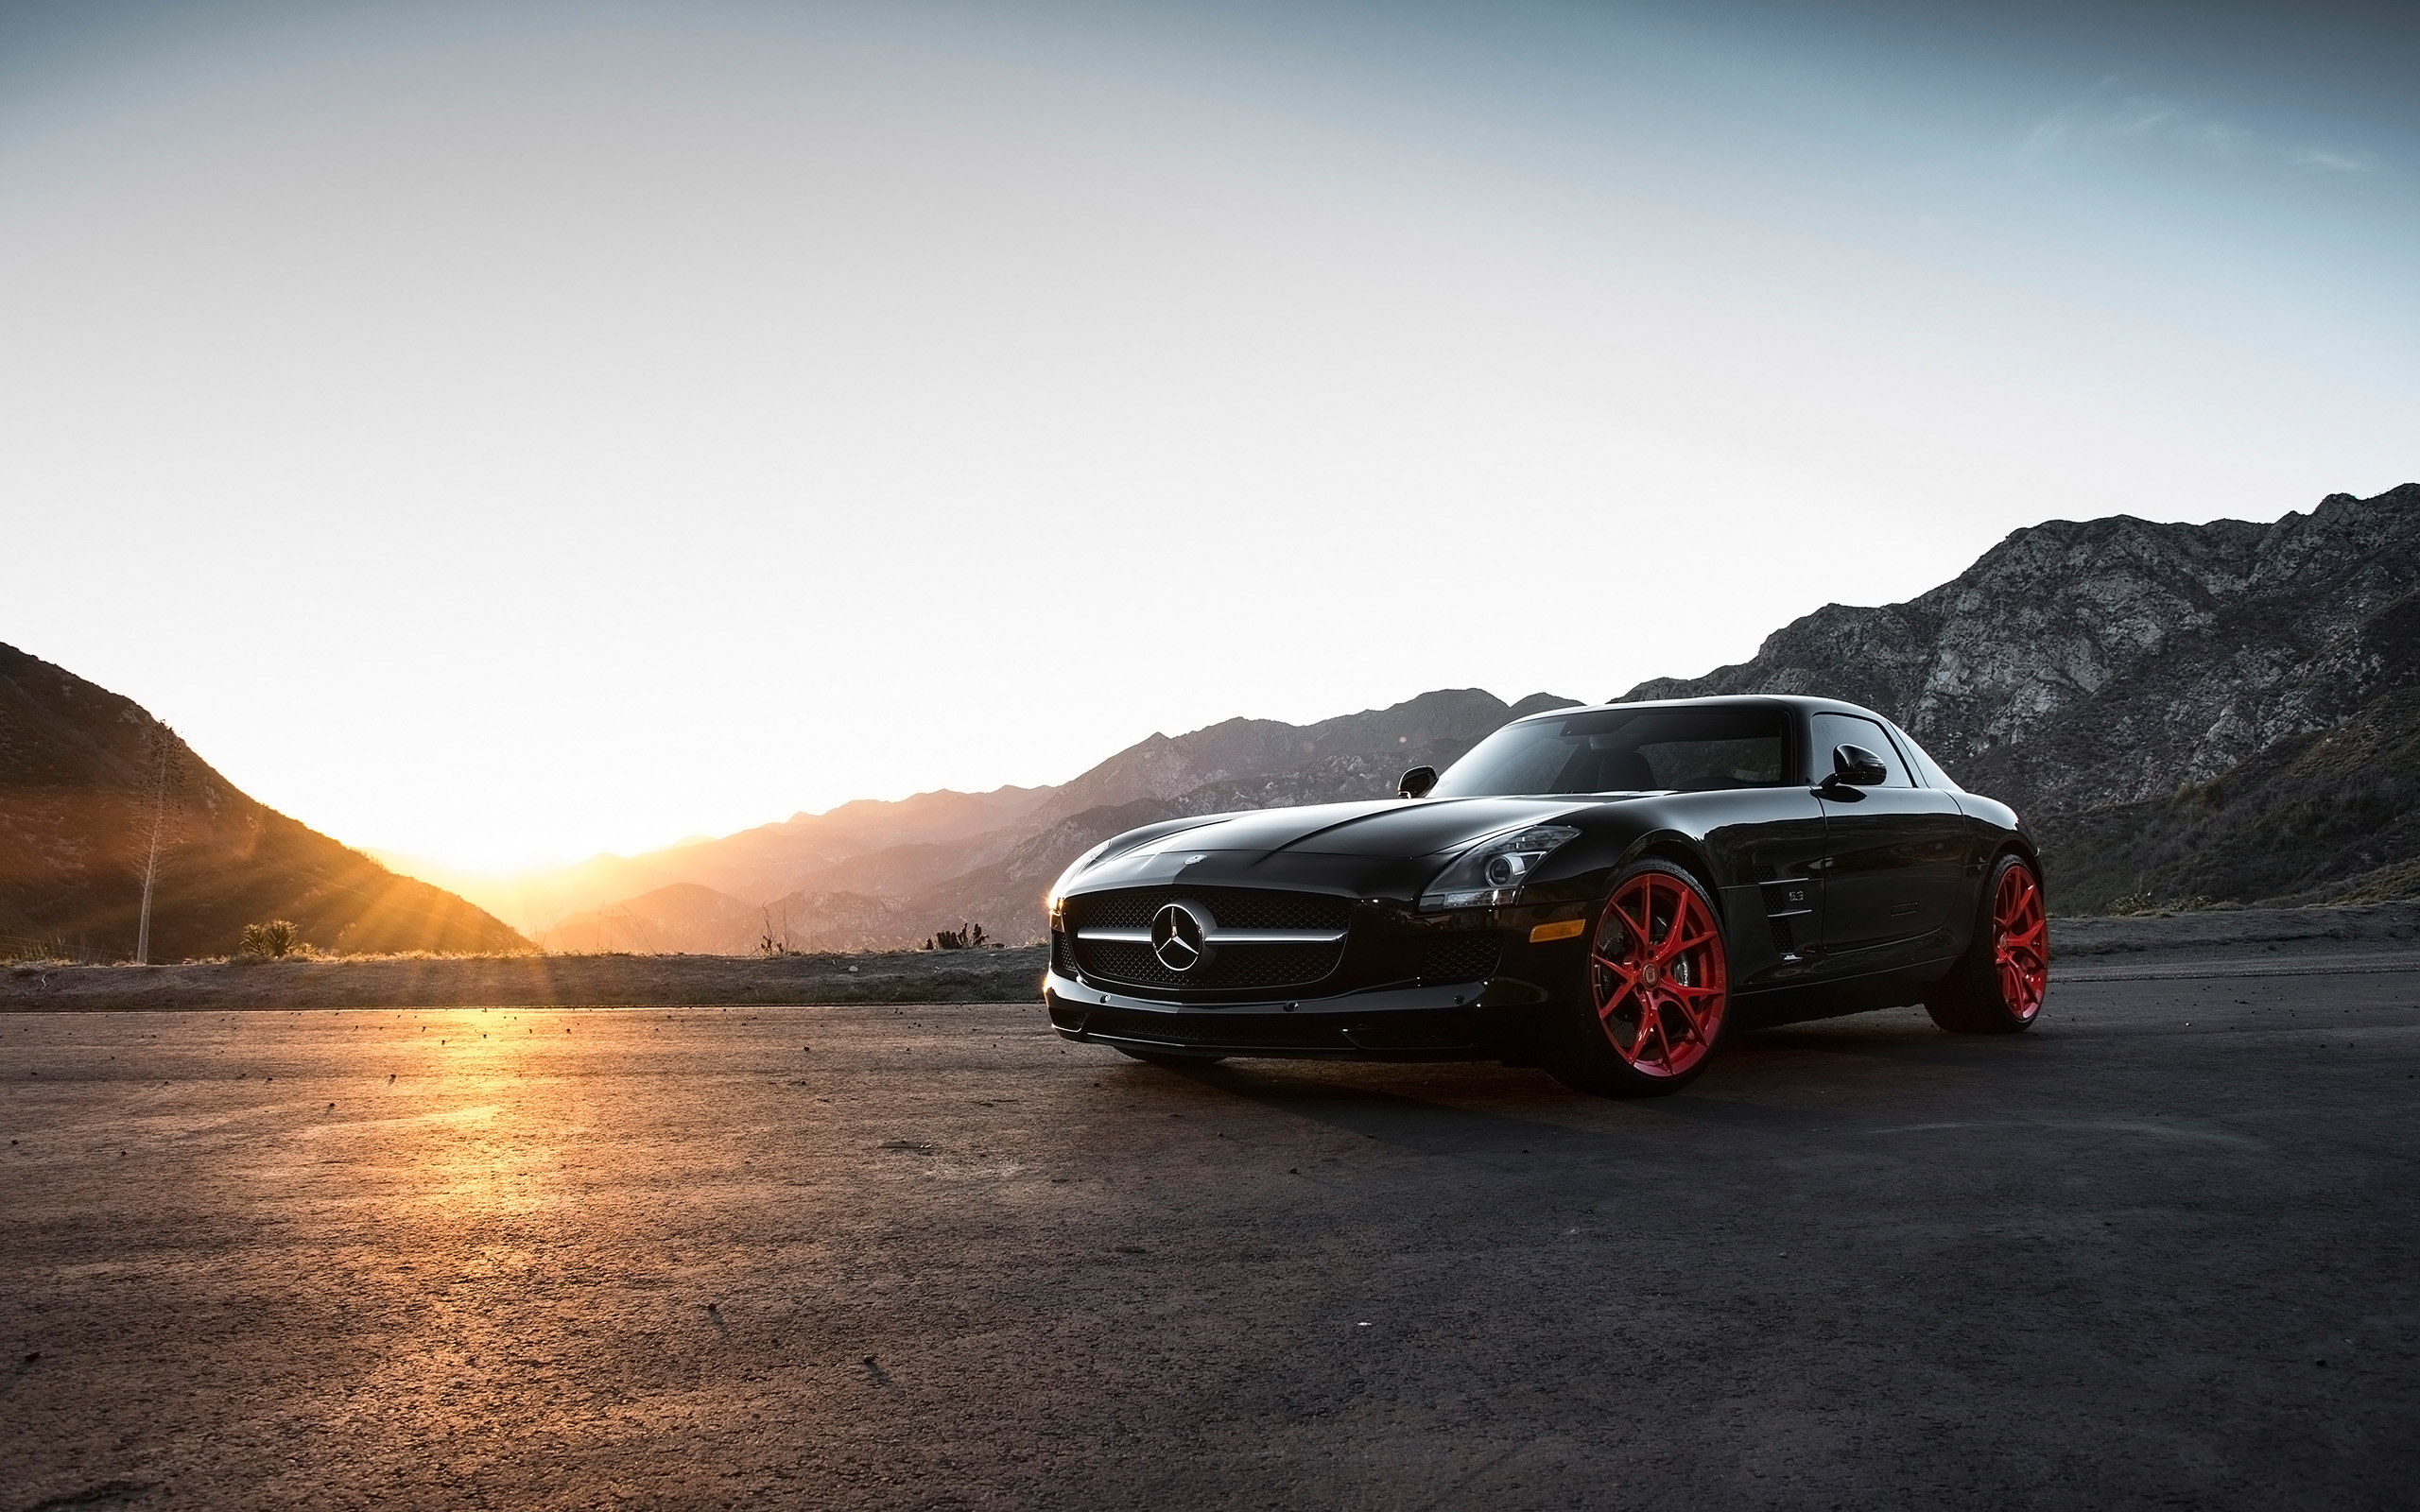 2015 klassen mercedes benz sls amg wallpaper hd car for 2015 mercedes benz sls amg